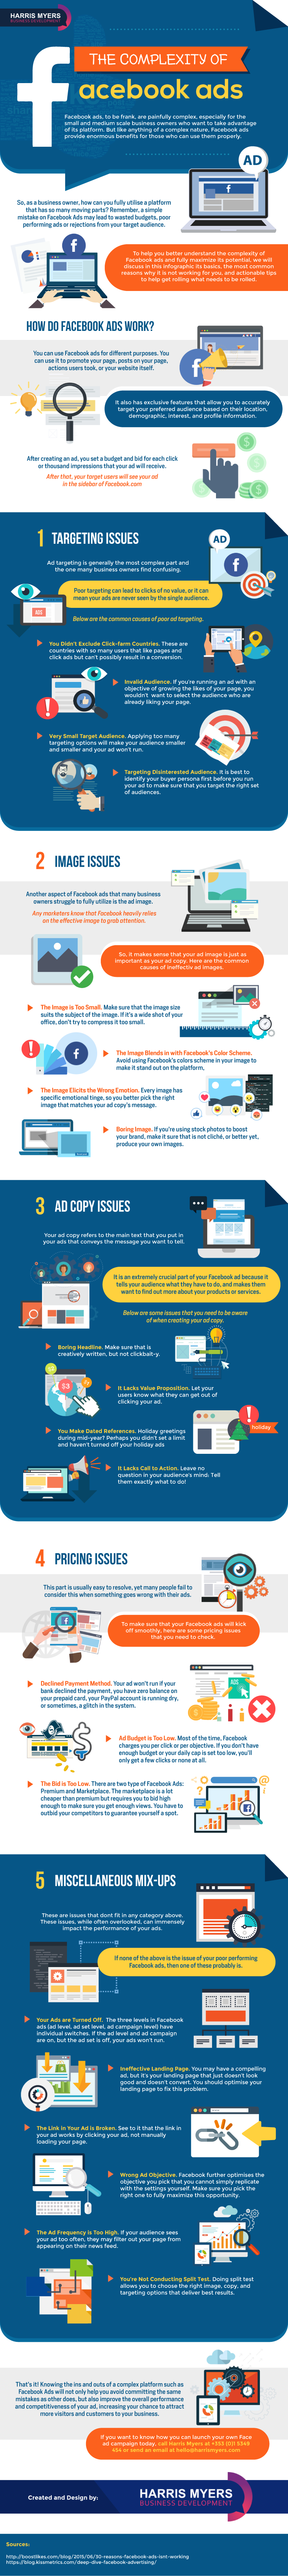 The Complexity of Facebook Ads - #Infographic